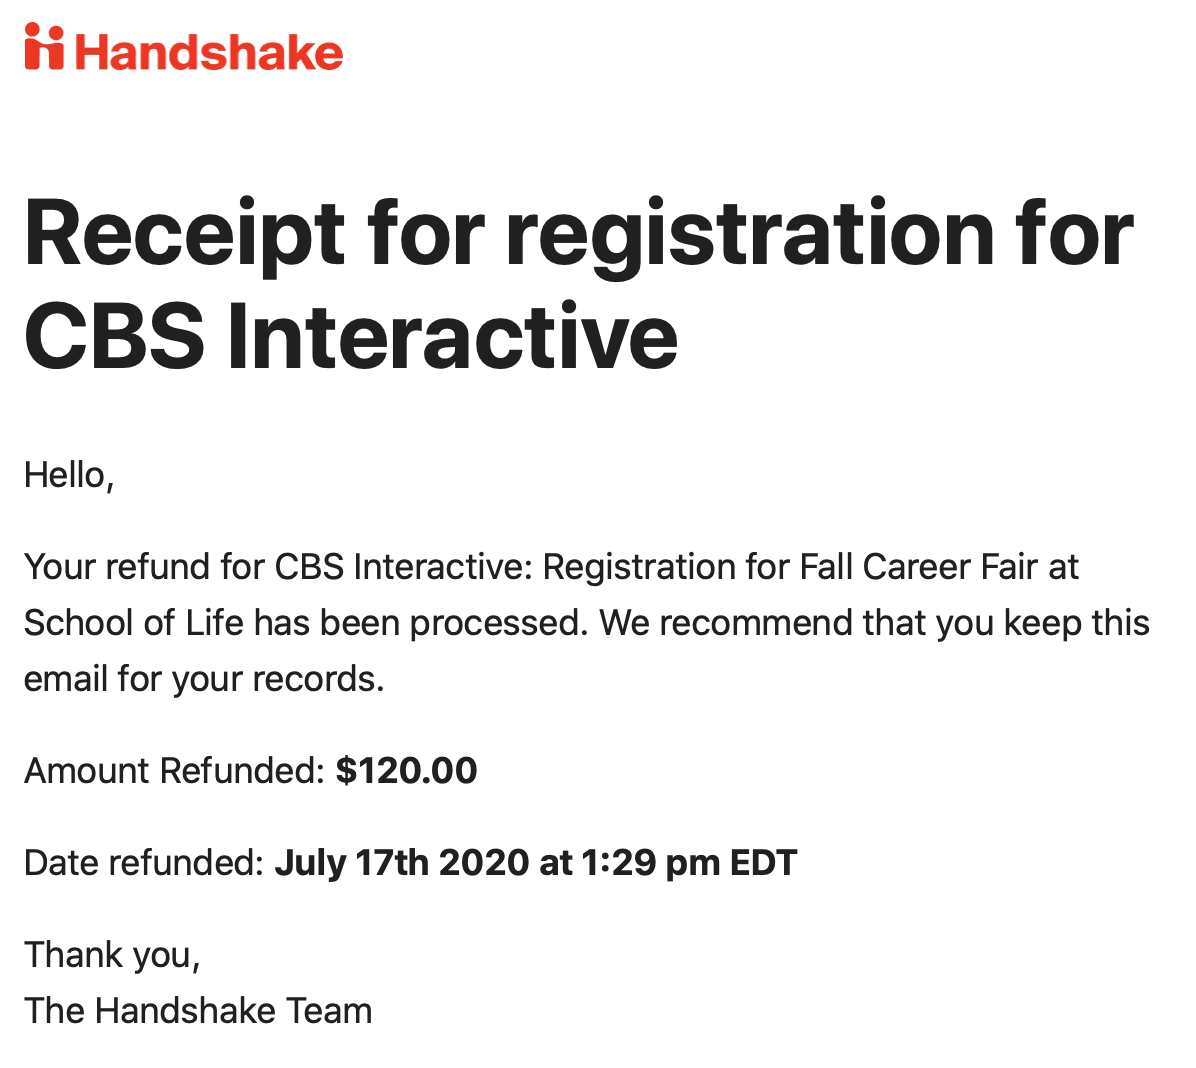 Receipt_for_CBS_Interactive_-_Registration_for_Fall_Career_Fair_at_School_of_Life.png